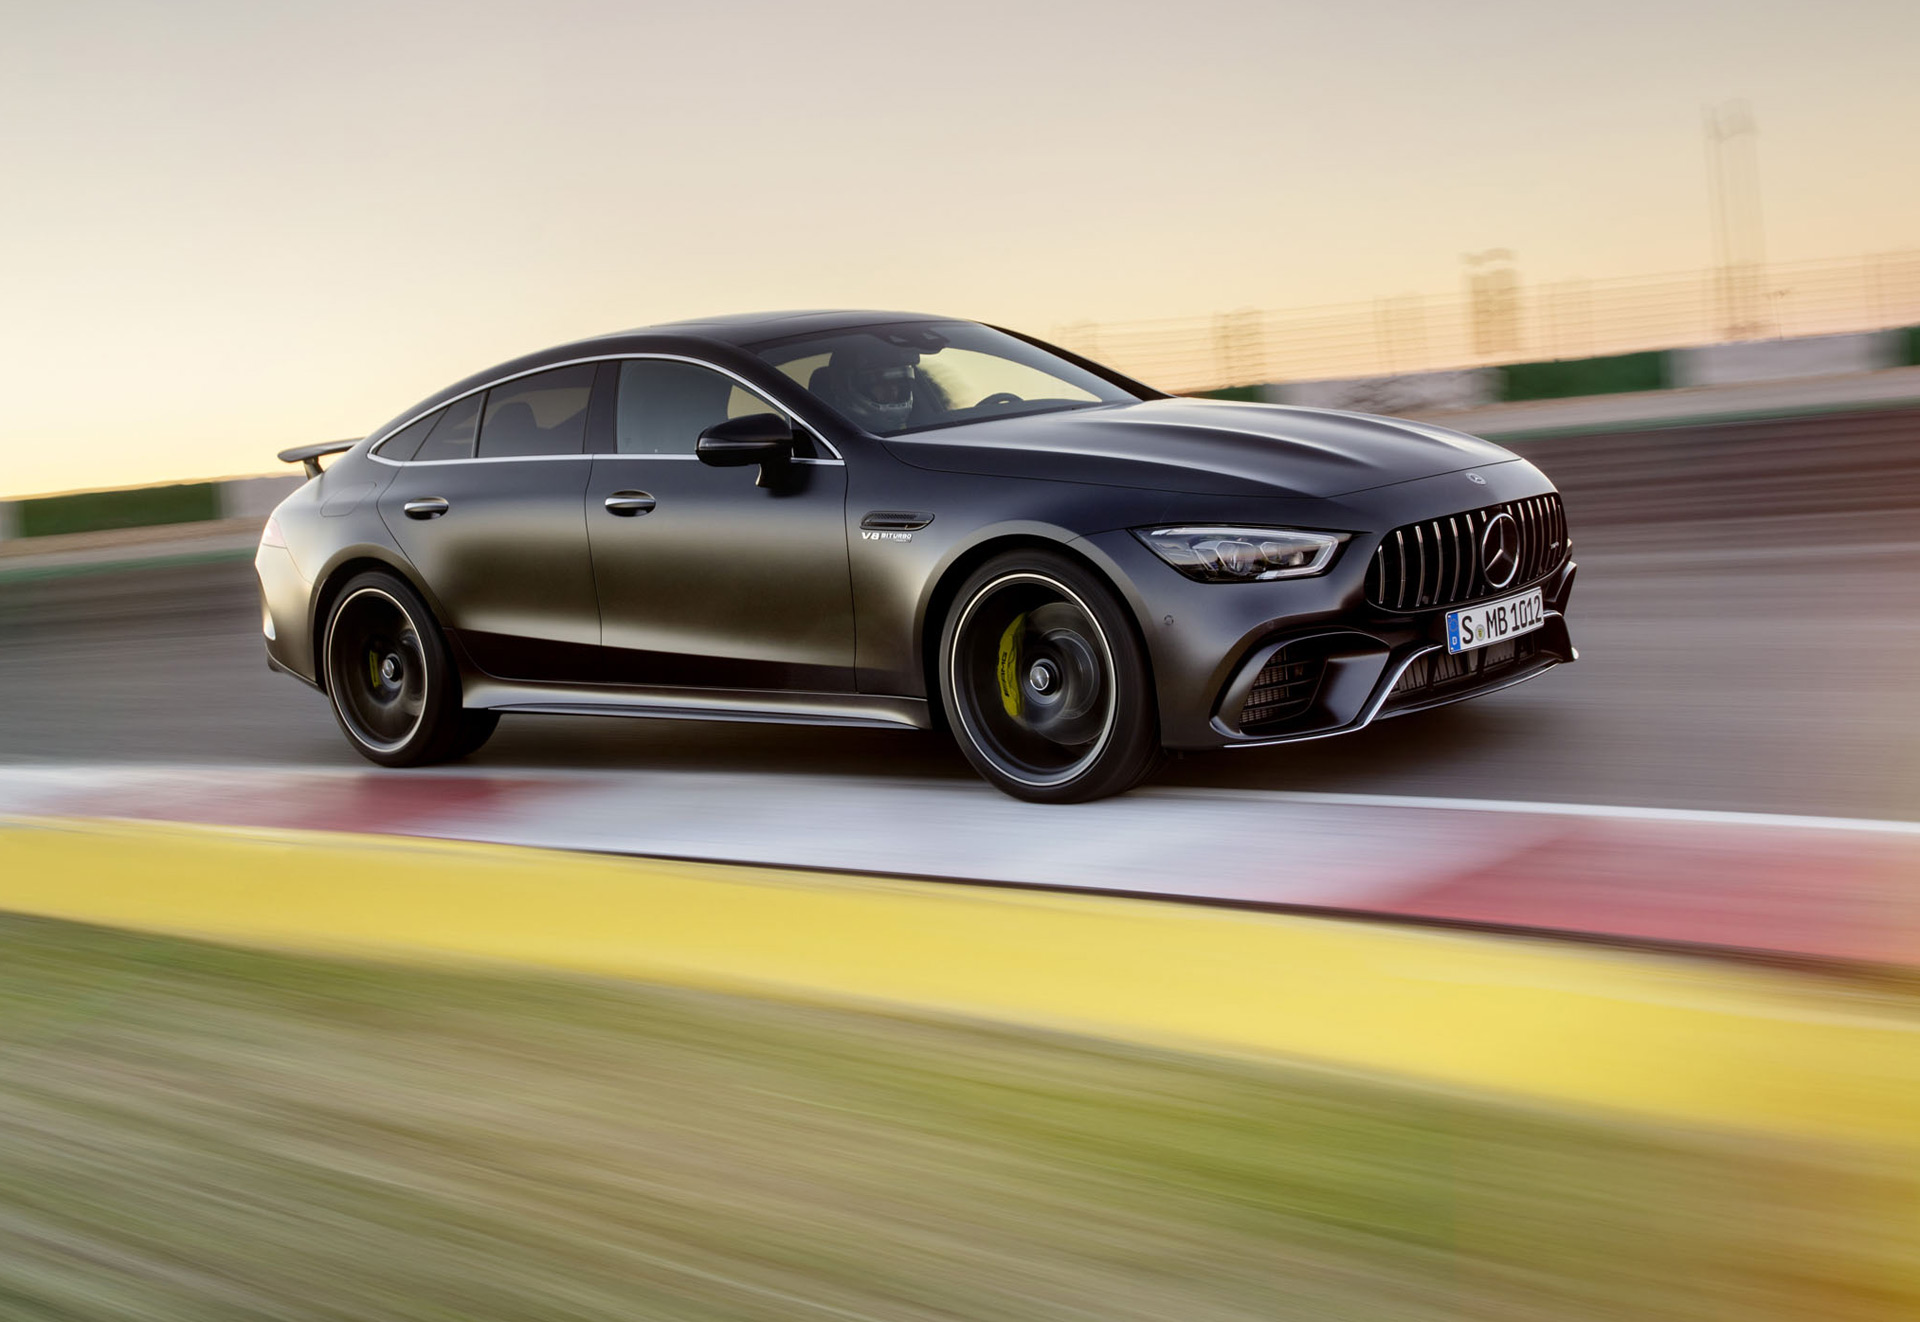 Mercedes-AMG standalone SUV isn't happening, GT Black Series coming in 2020